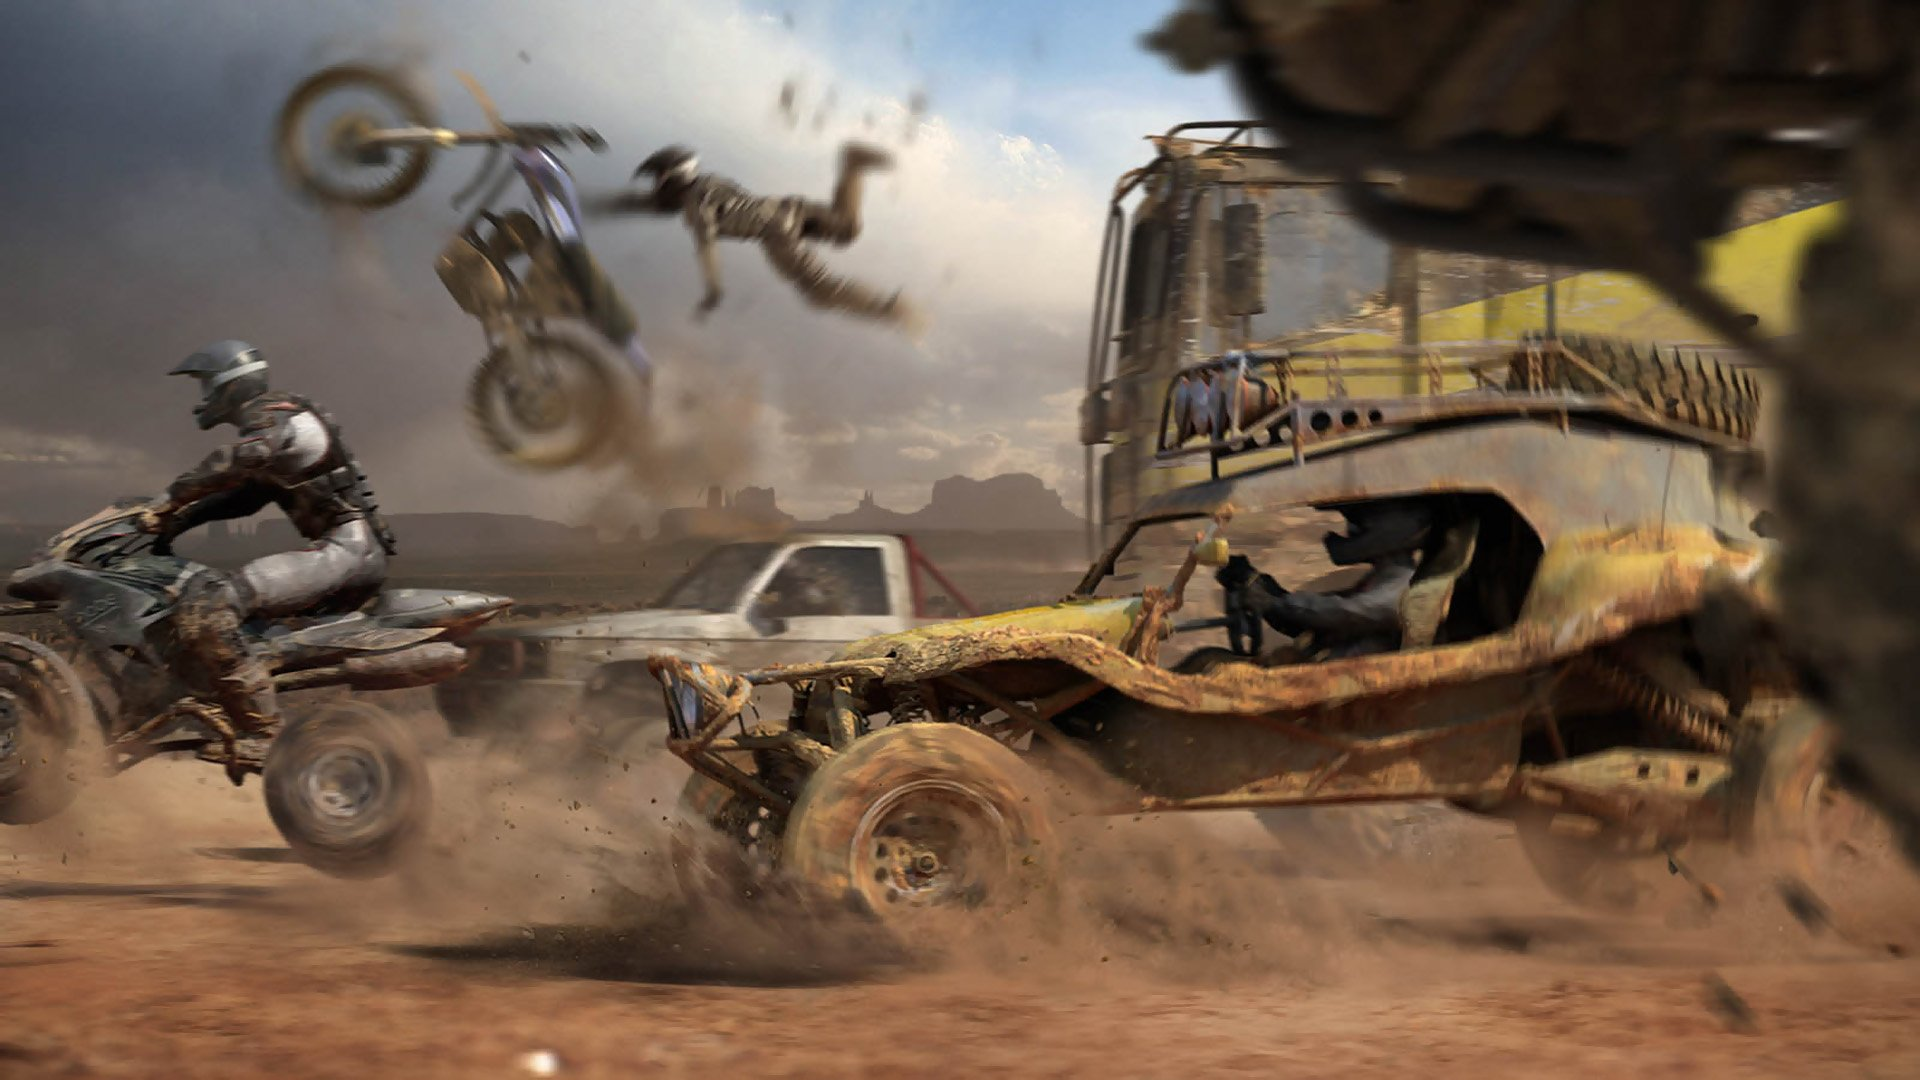 1 Atv Offroad Fury 4 Hd Wallpapers Background Images Wallpaper Abyss